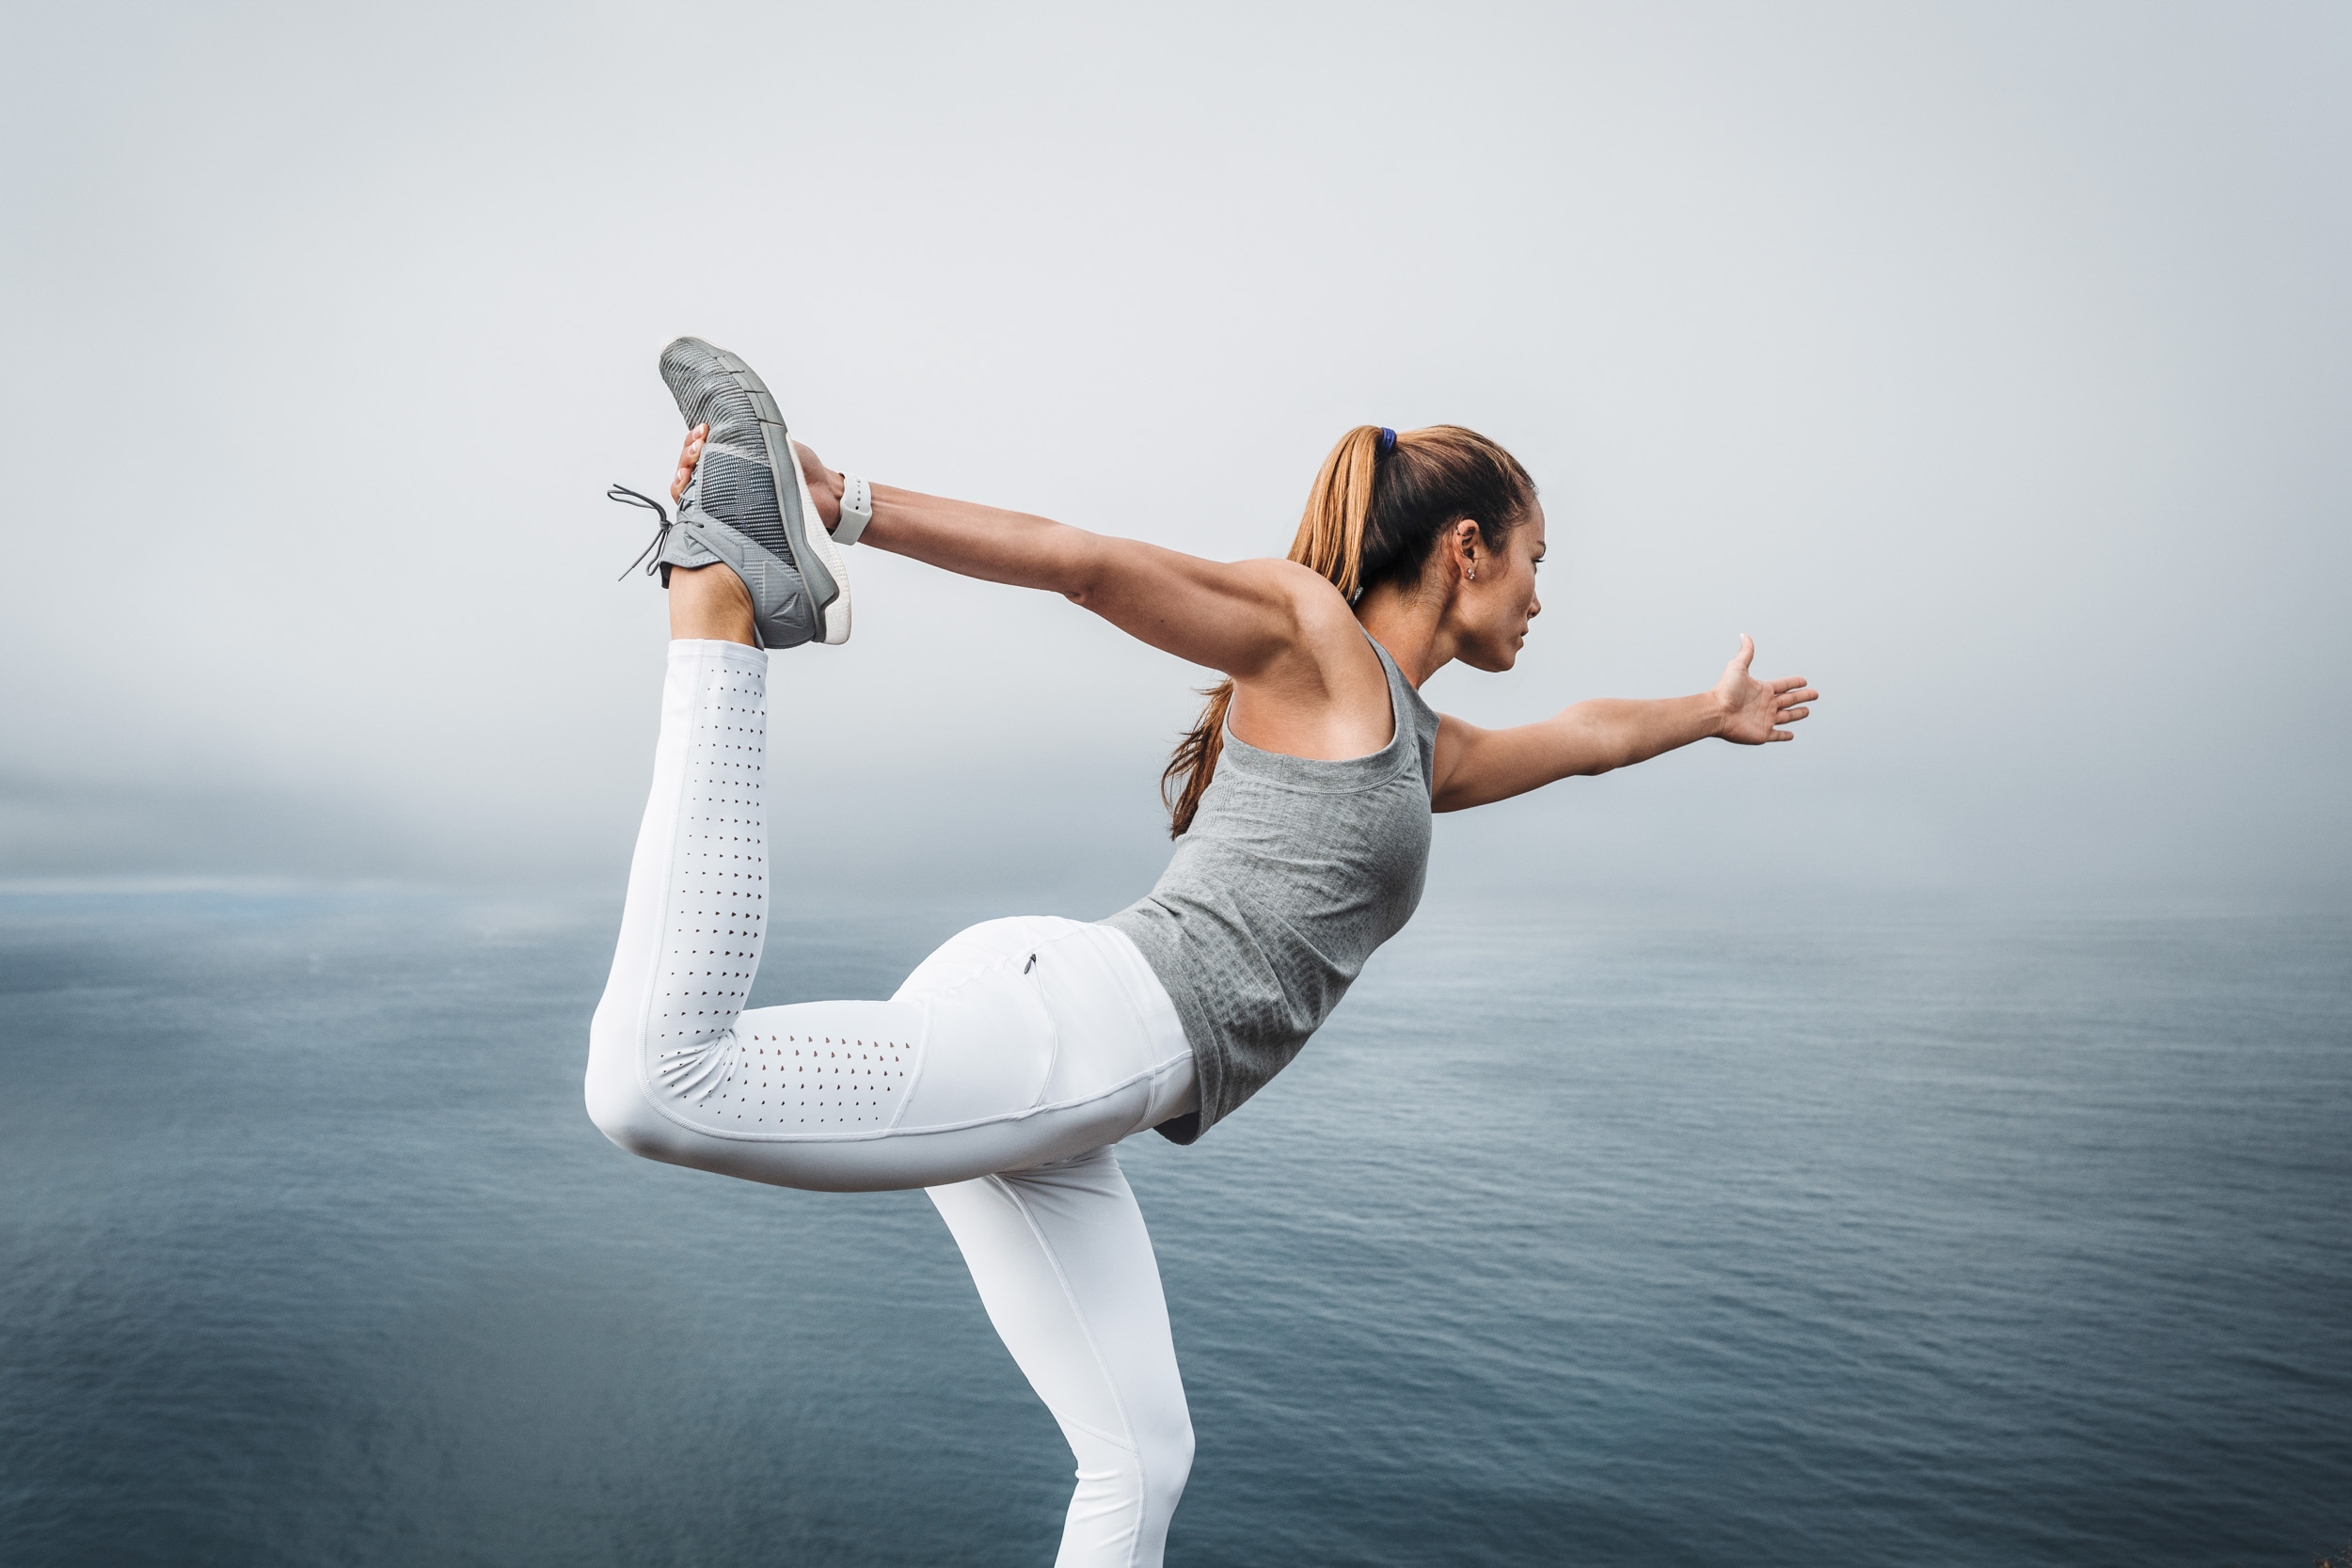 Female athlete wearing white Athleta tights and grey shirt practices yoga on a cliff near a foggy ocean